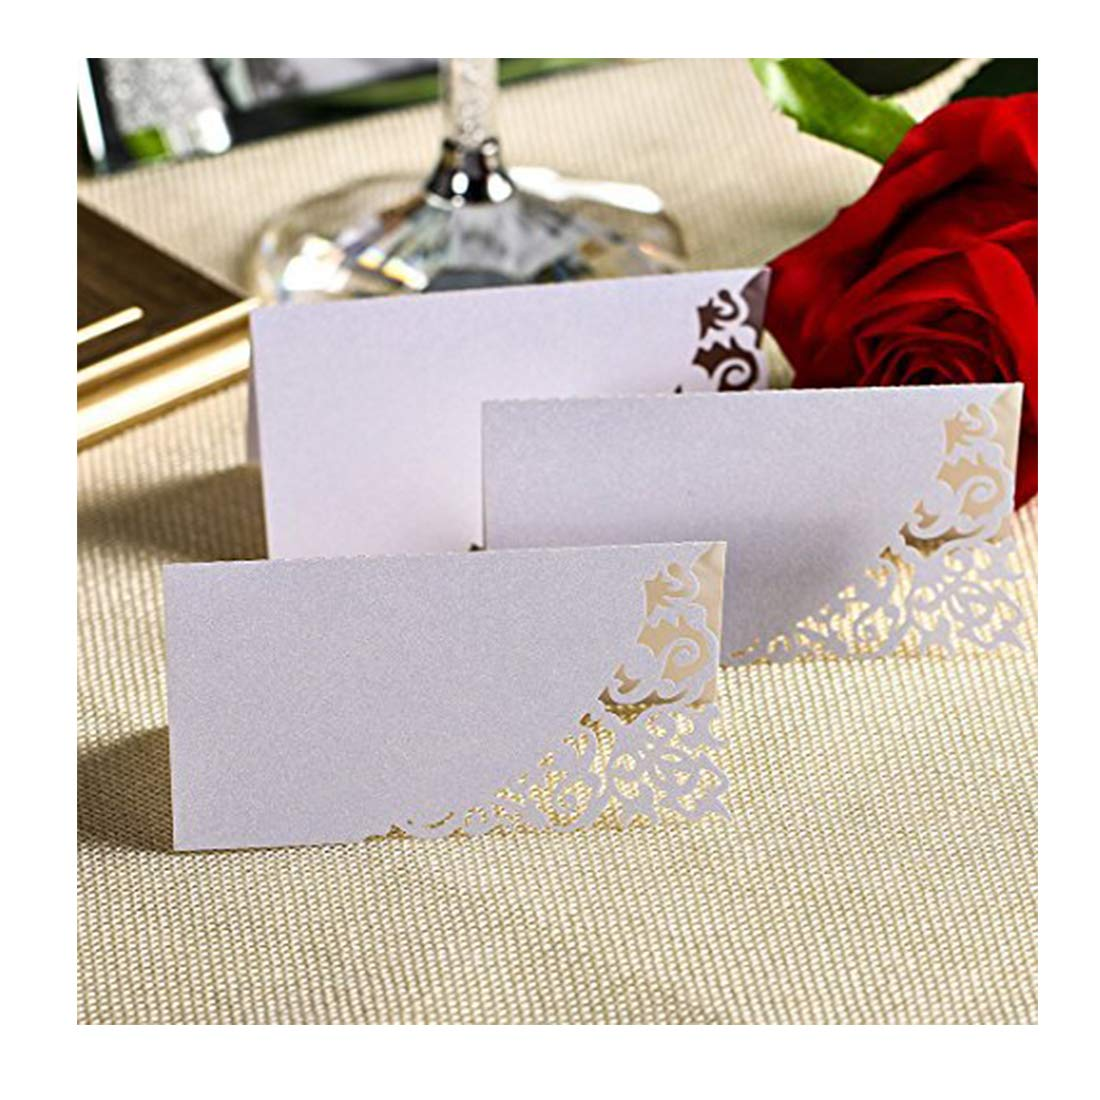 YUFENG Laser Cut Place Cards Table Name Cards For Wedding Birthday Party (60pcs ice white)